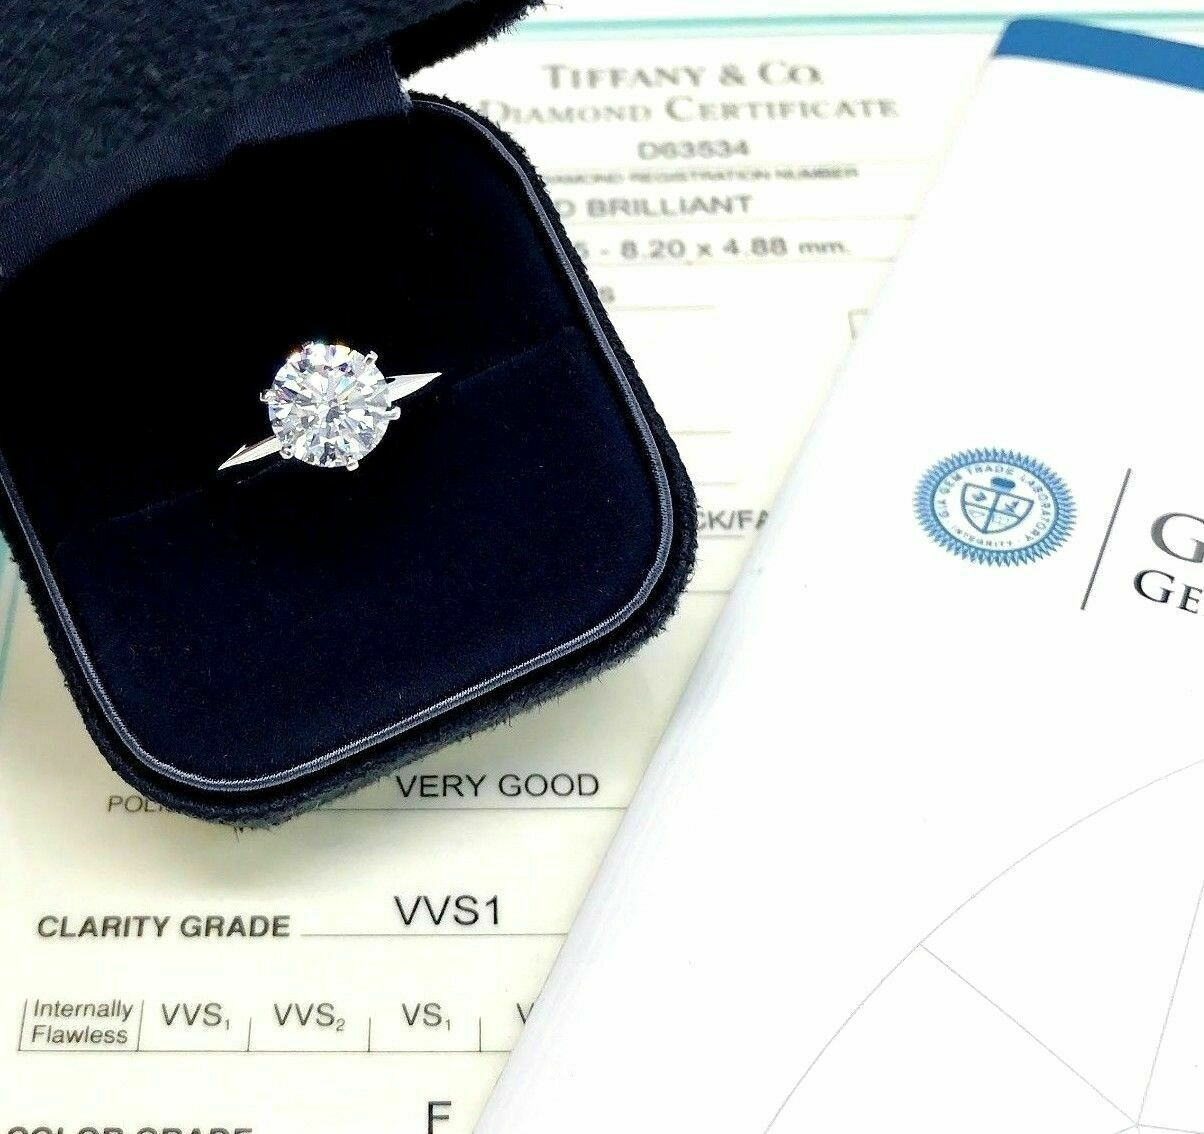 Tiffany & Co. 2.00 Carats F VVS1 Round Diamond Platinum Solitaire Ring w Cert